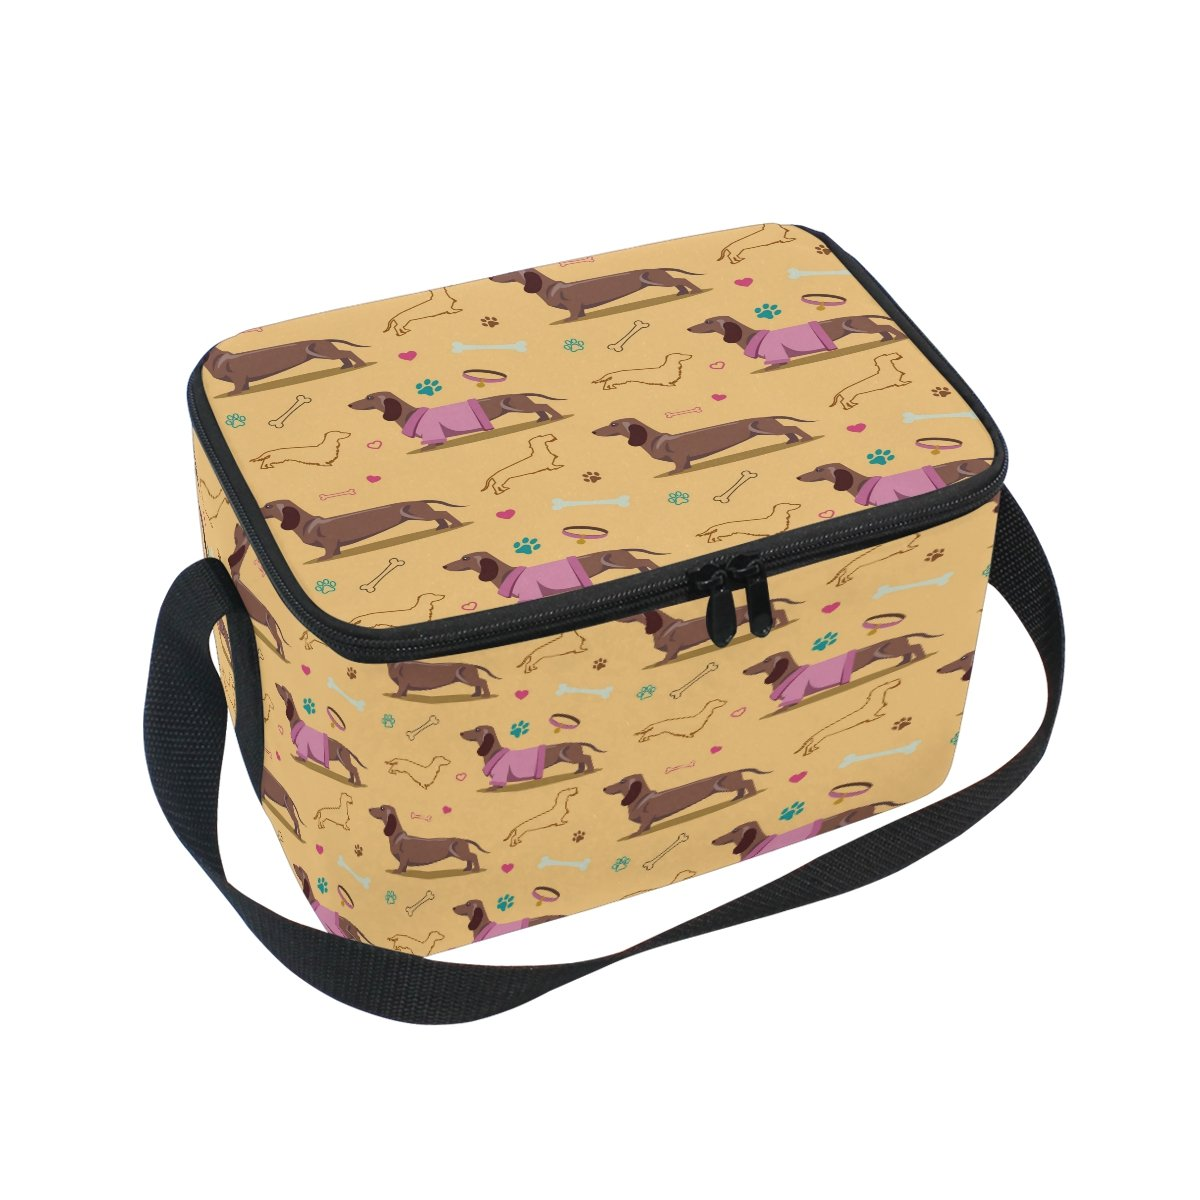 14ef212f97d0 ALAZA Dachshund Paw Print Insulated Lunch Bag Box Cooler Bag ...